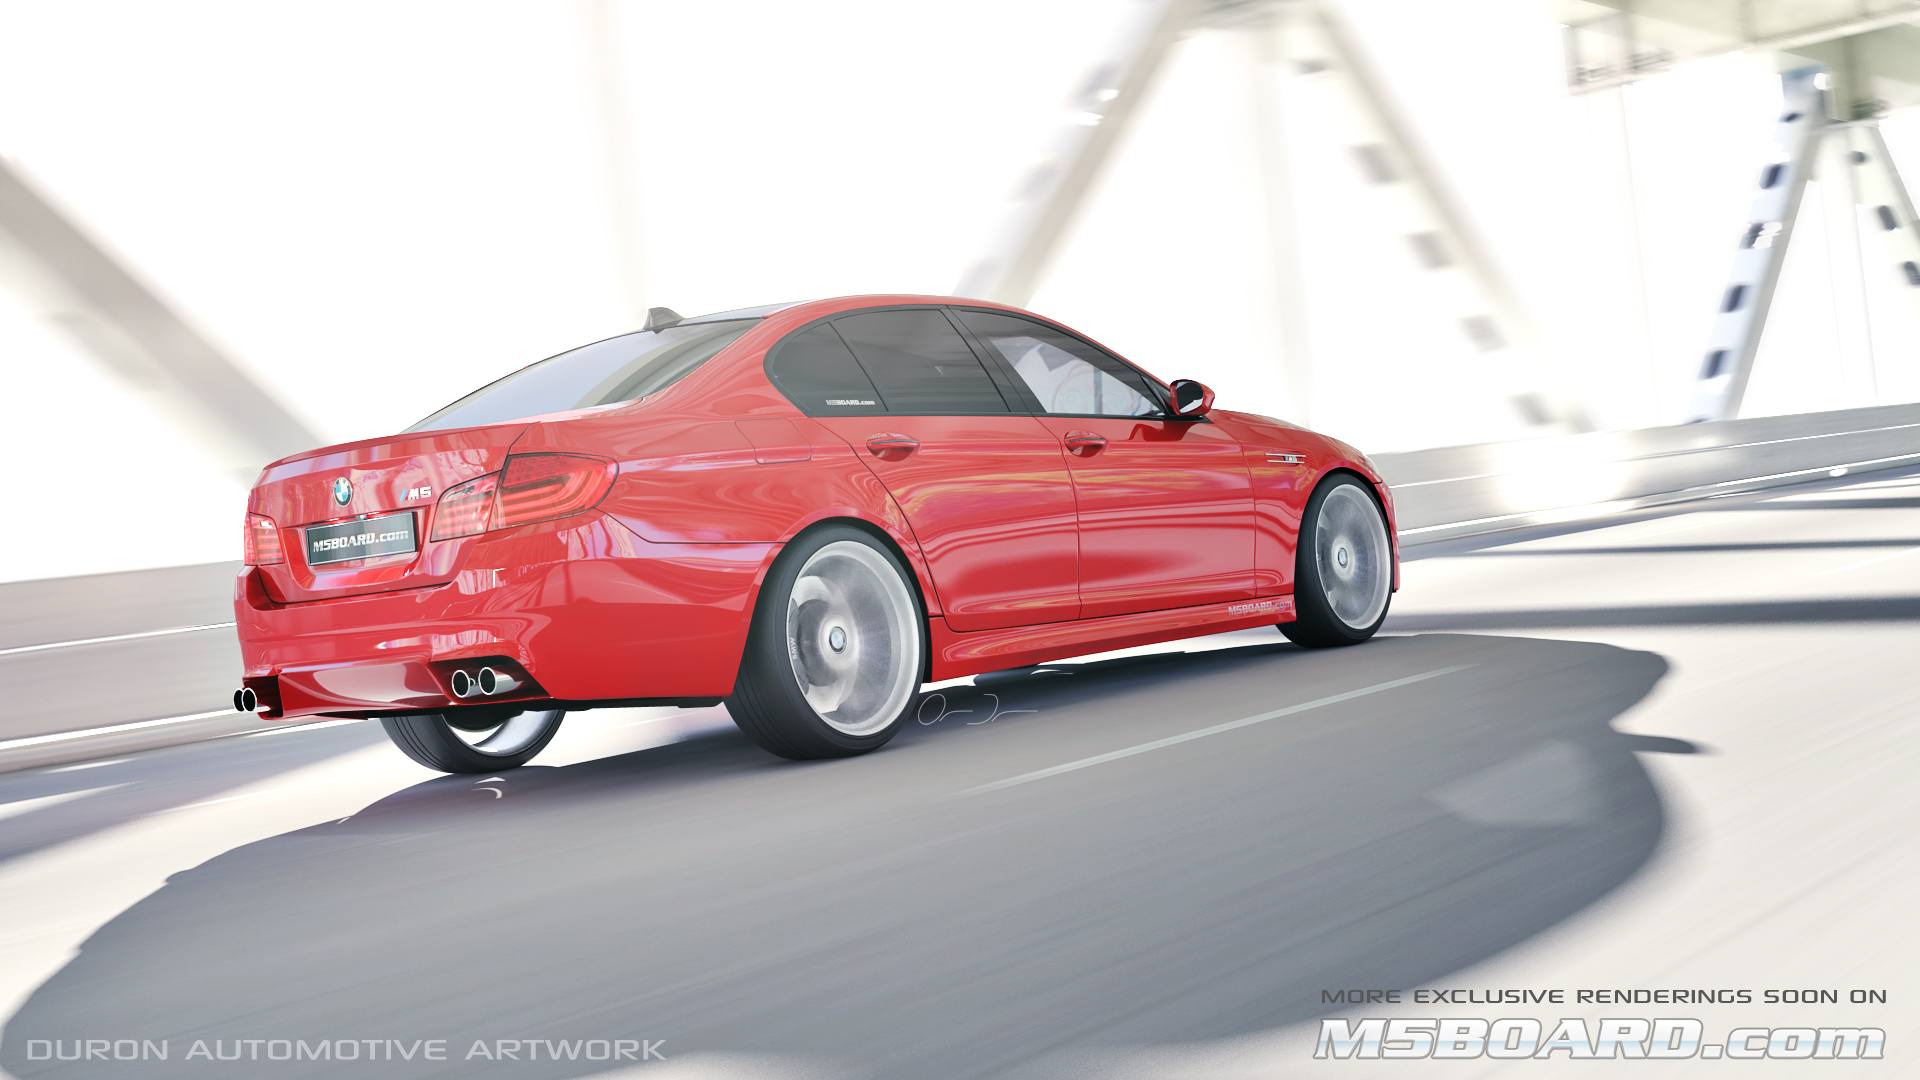 bmw m5 wallpaper. 2009 Bmw M5 Wallpaper